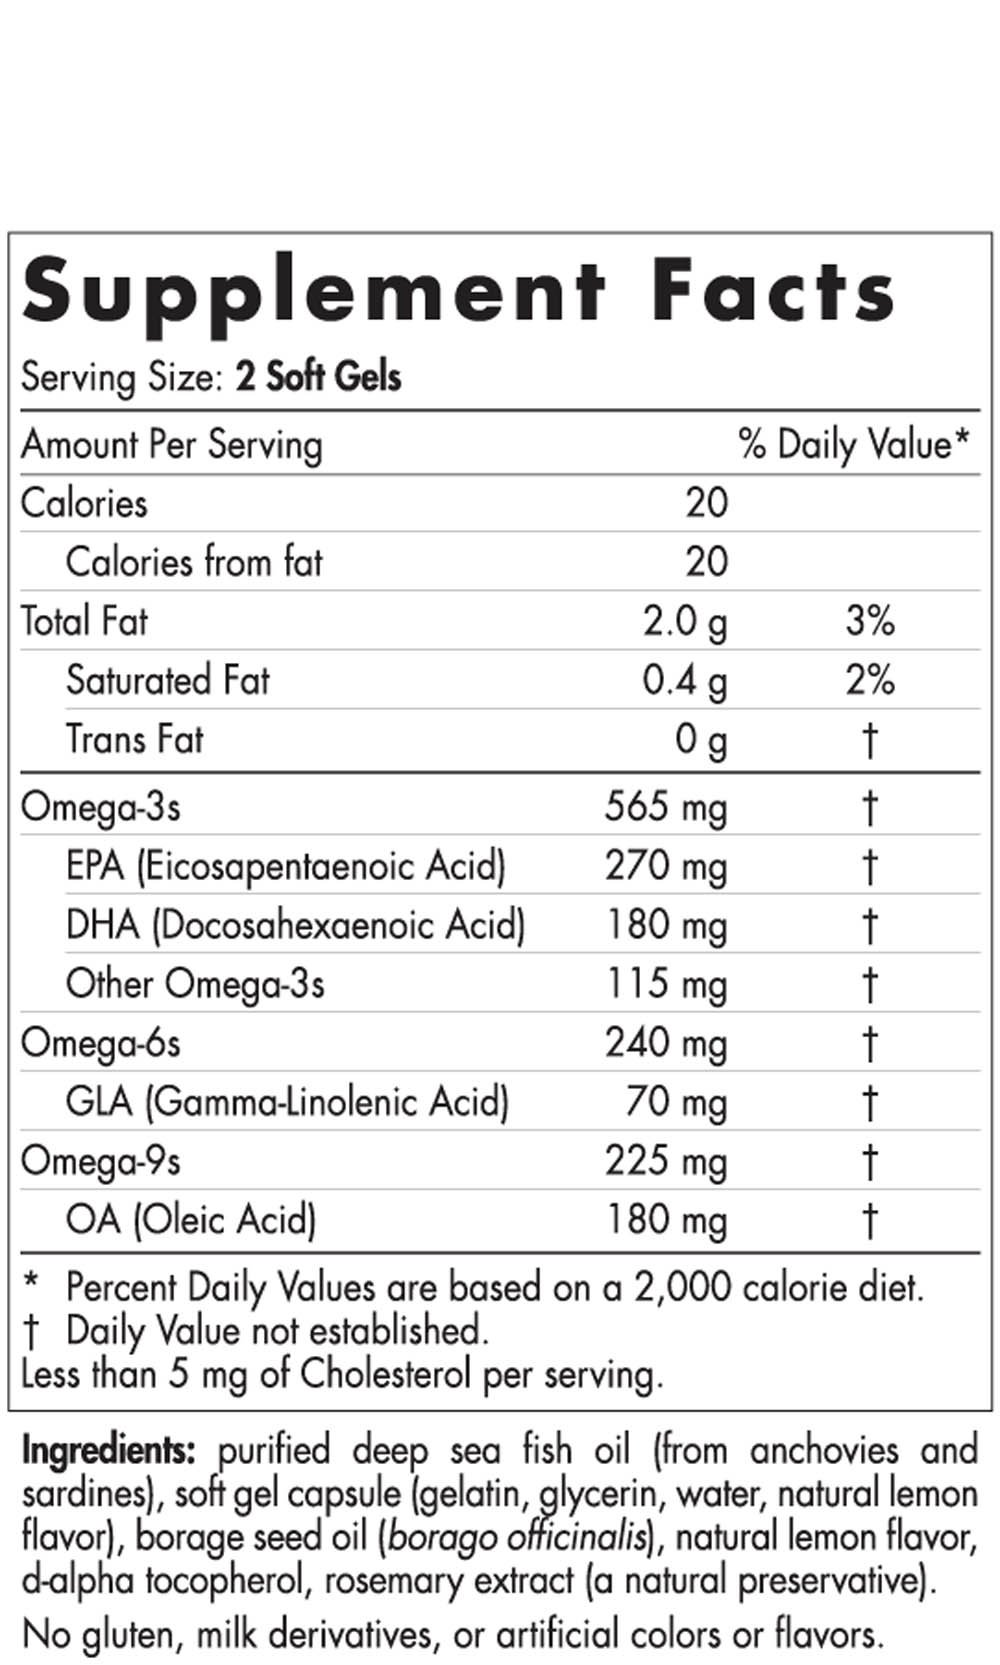 Nordic Naturals - Complete Omega Junior, Promotes Brain, Bone, and Nervous and Immune System Health, 180 Soft Gels by Nordic Naturals (Image #2)